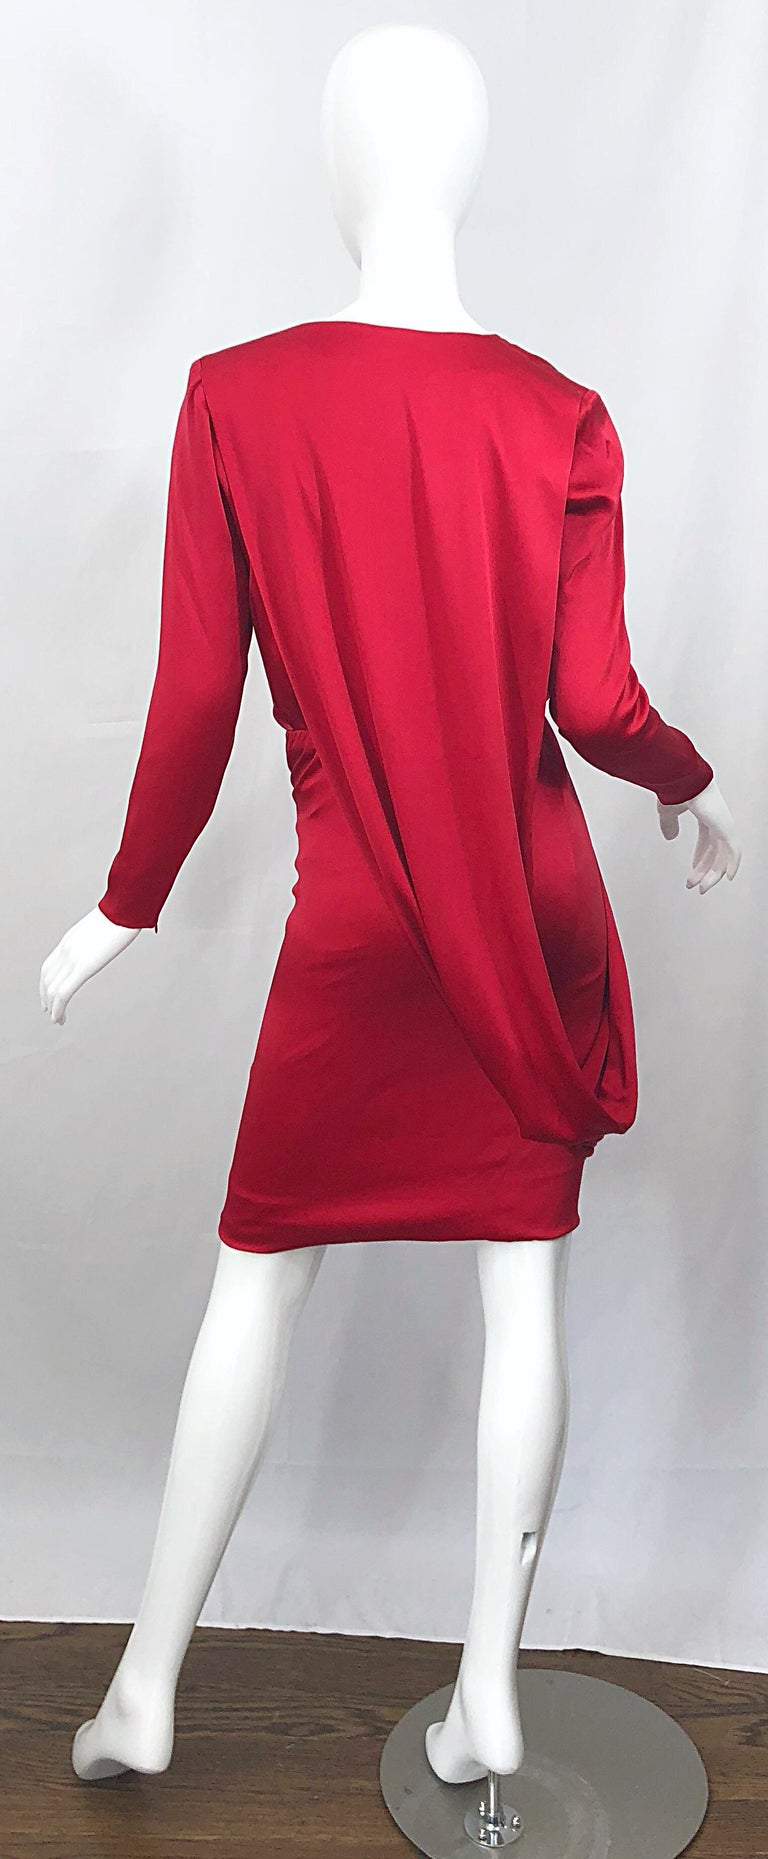 Vintage Givenchy Couture by Alexander McQueen Sz 36 Lipstick Red Silk Cape Dress In Excellent Condition For Sale In Chicago, IL